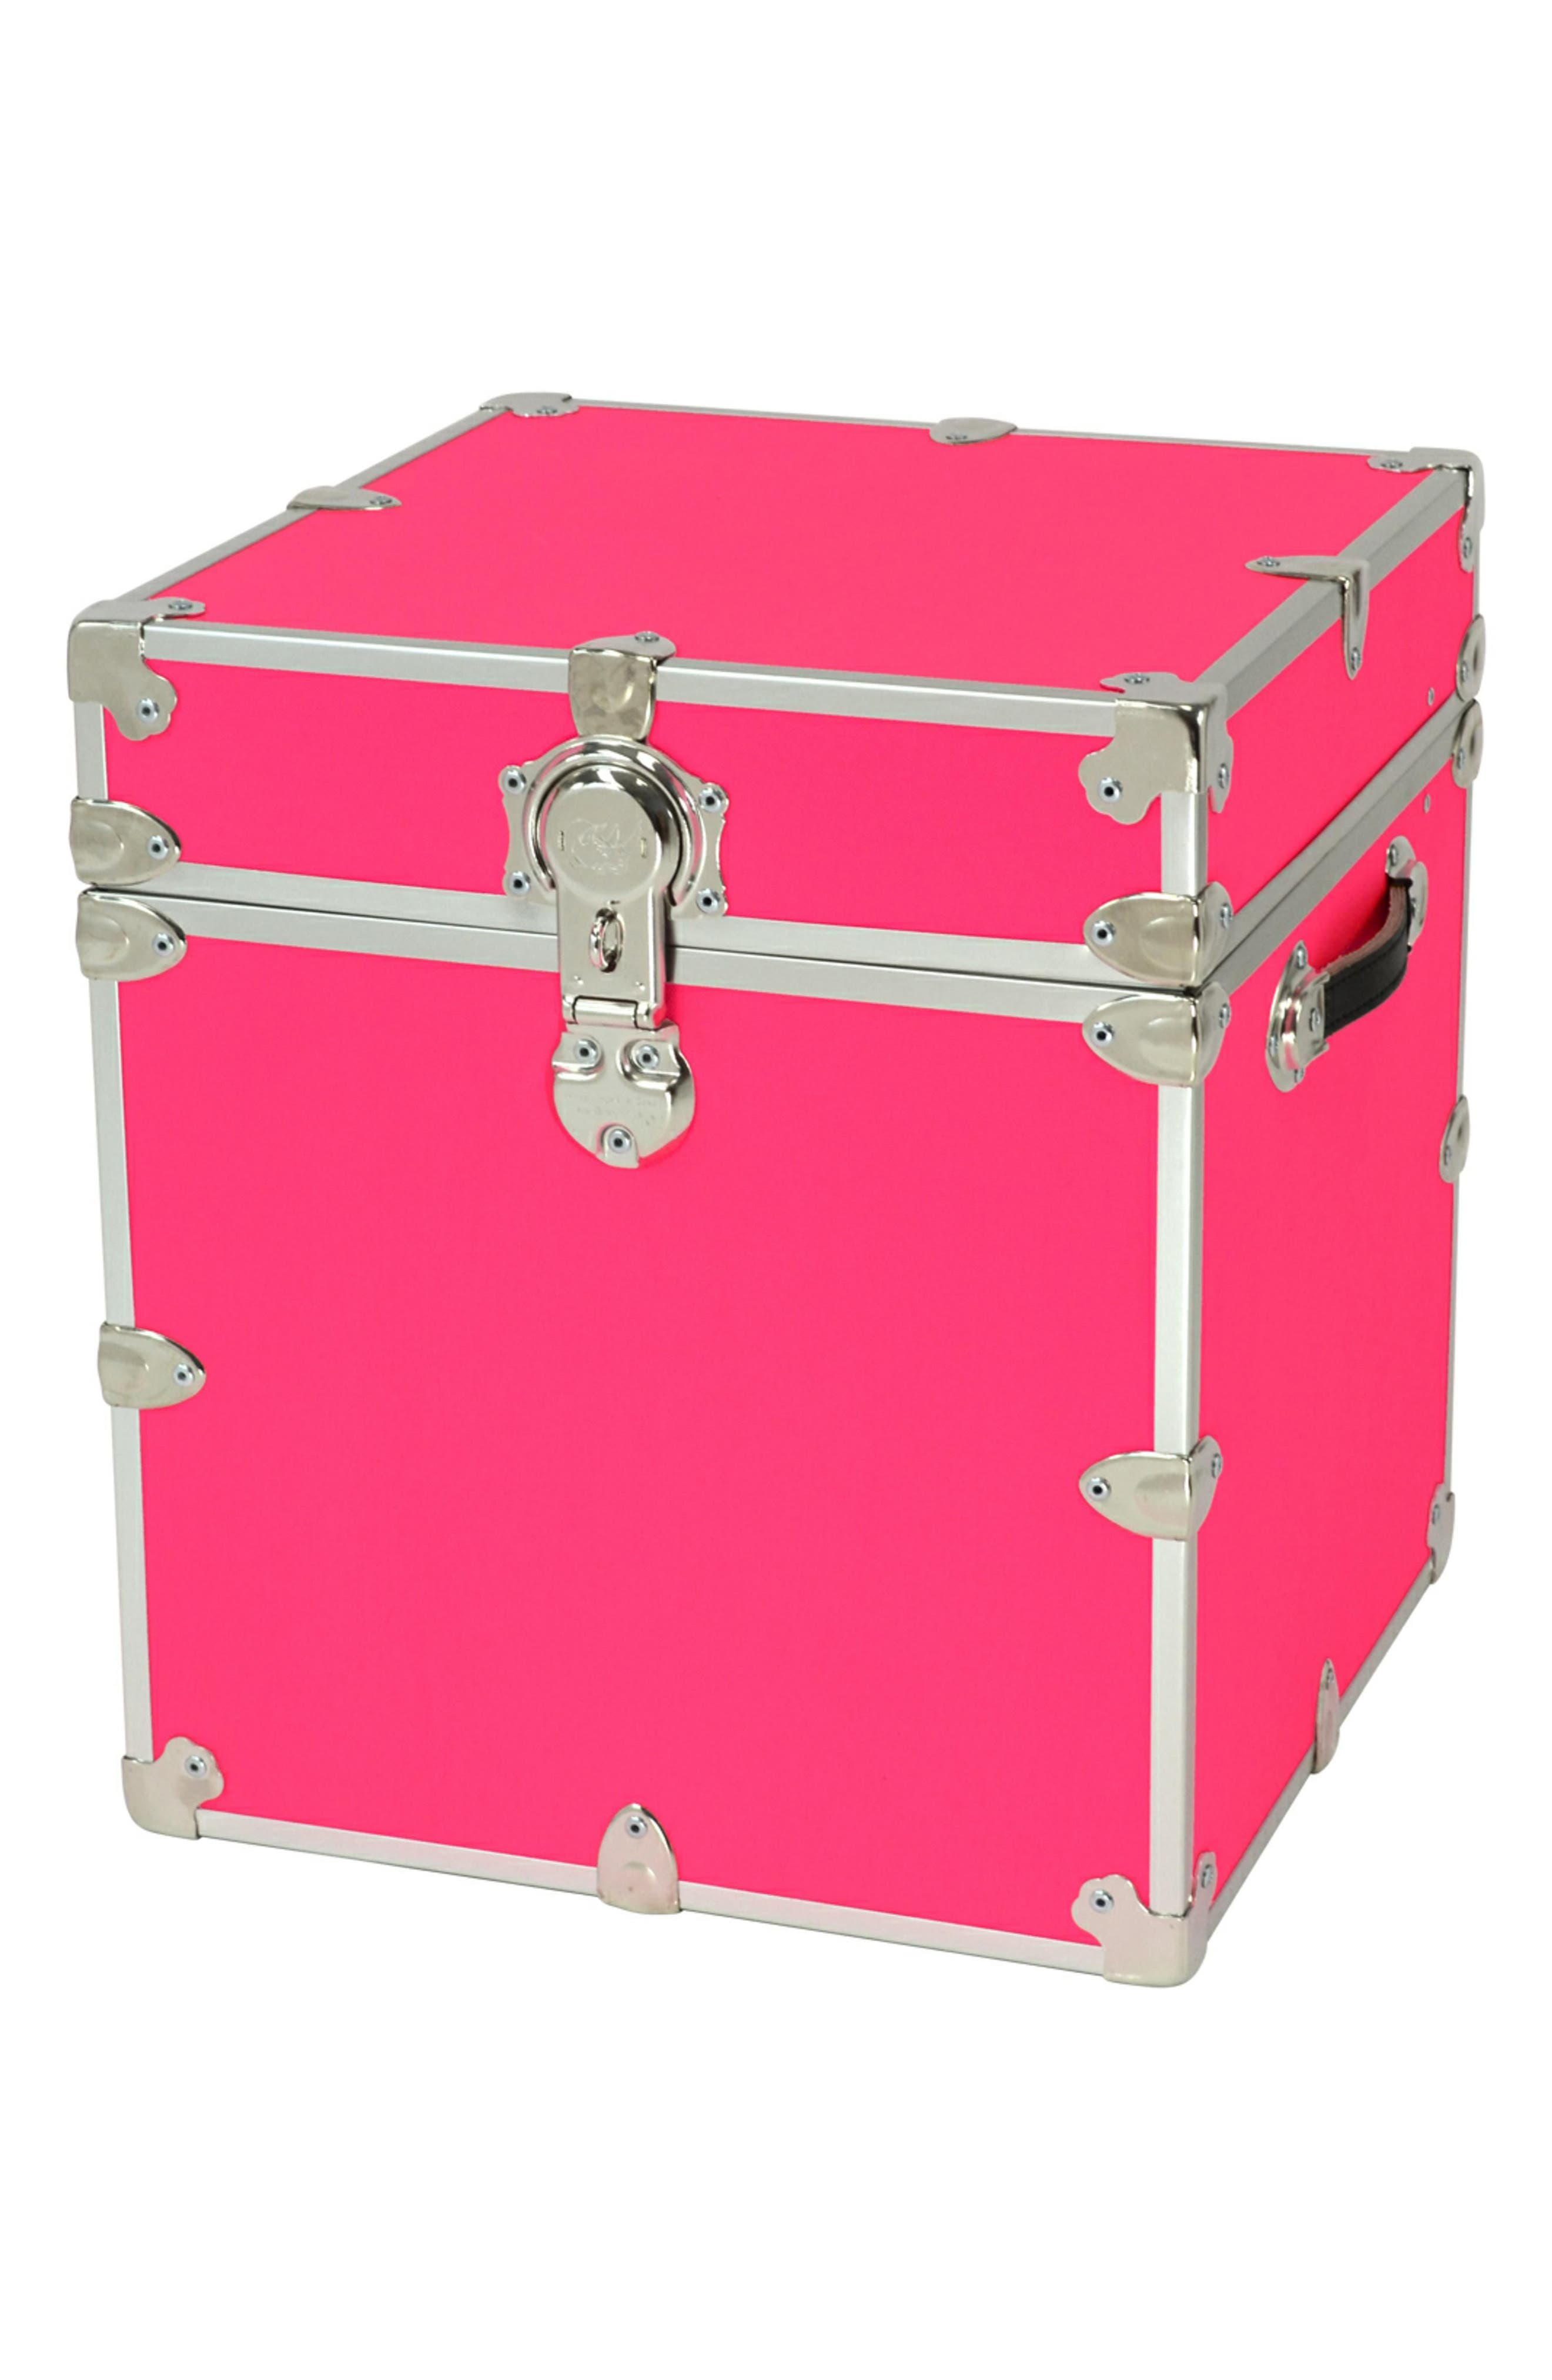 Rhino Trunk  Case Armor Cube Trunk Size One Size  Pink